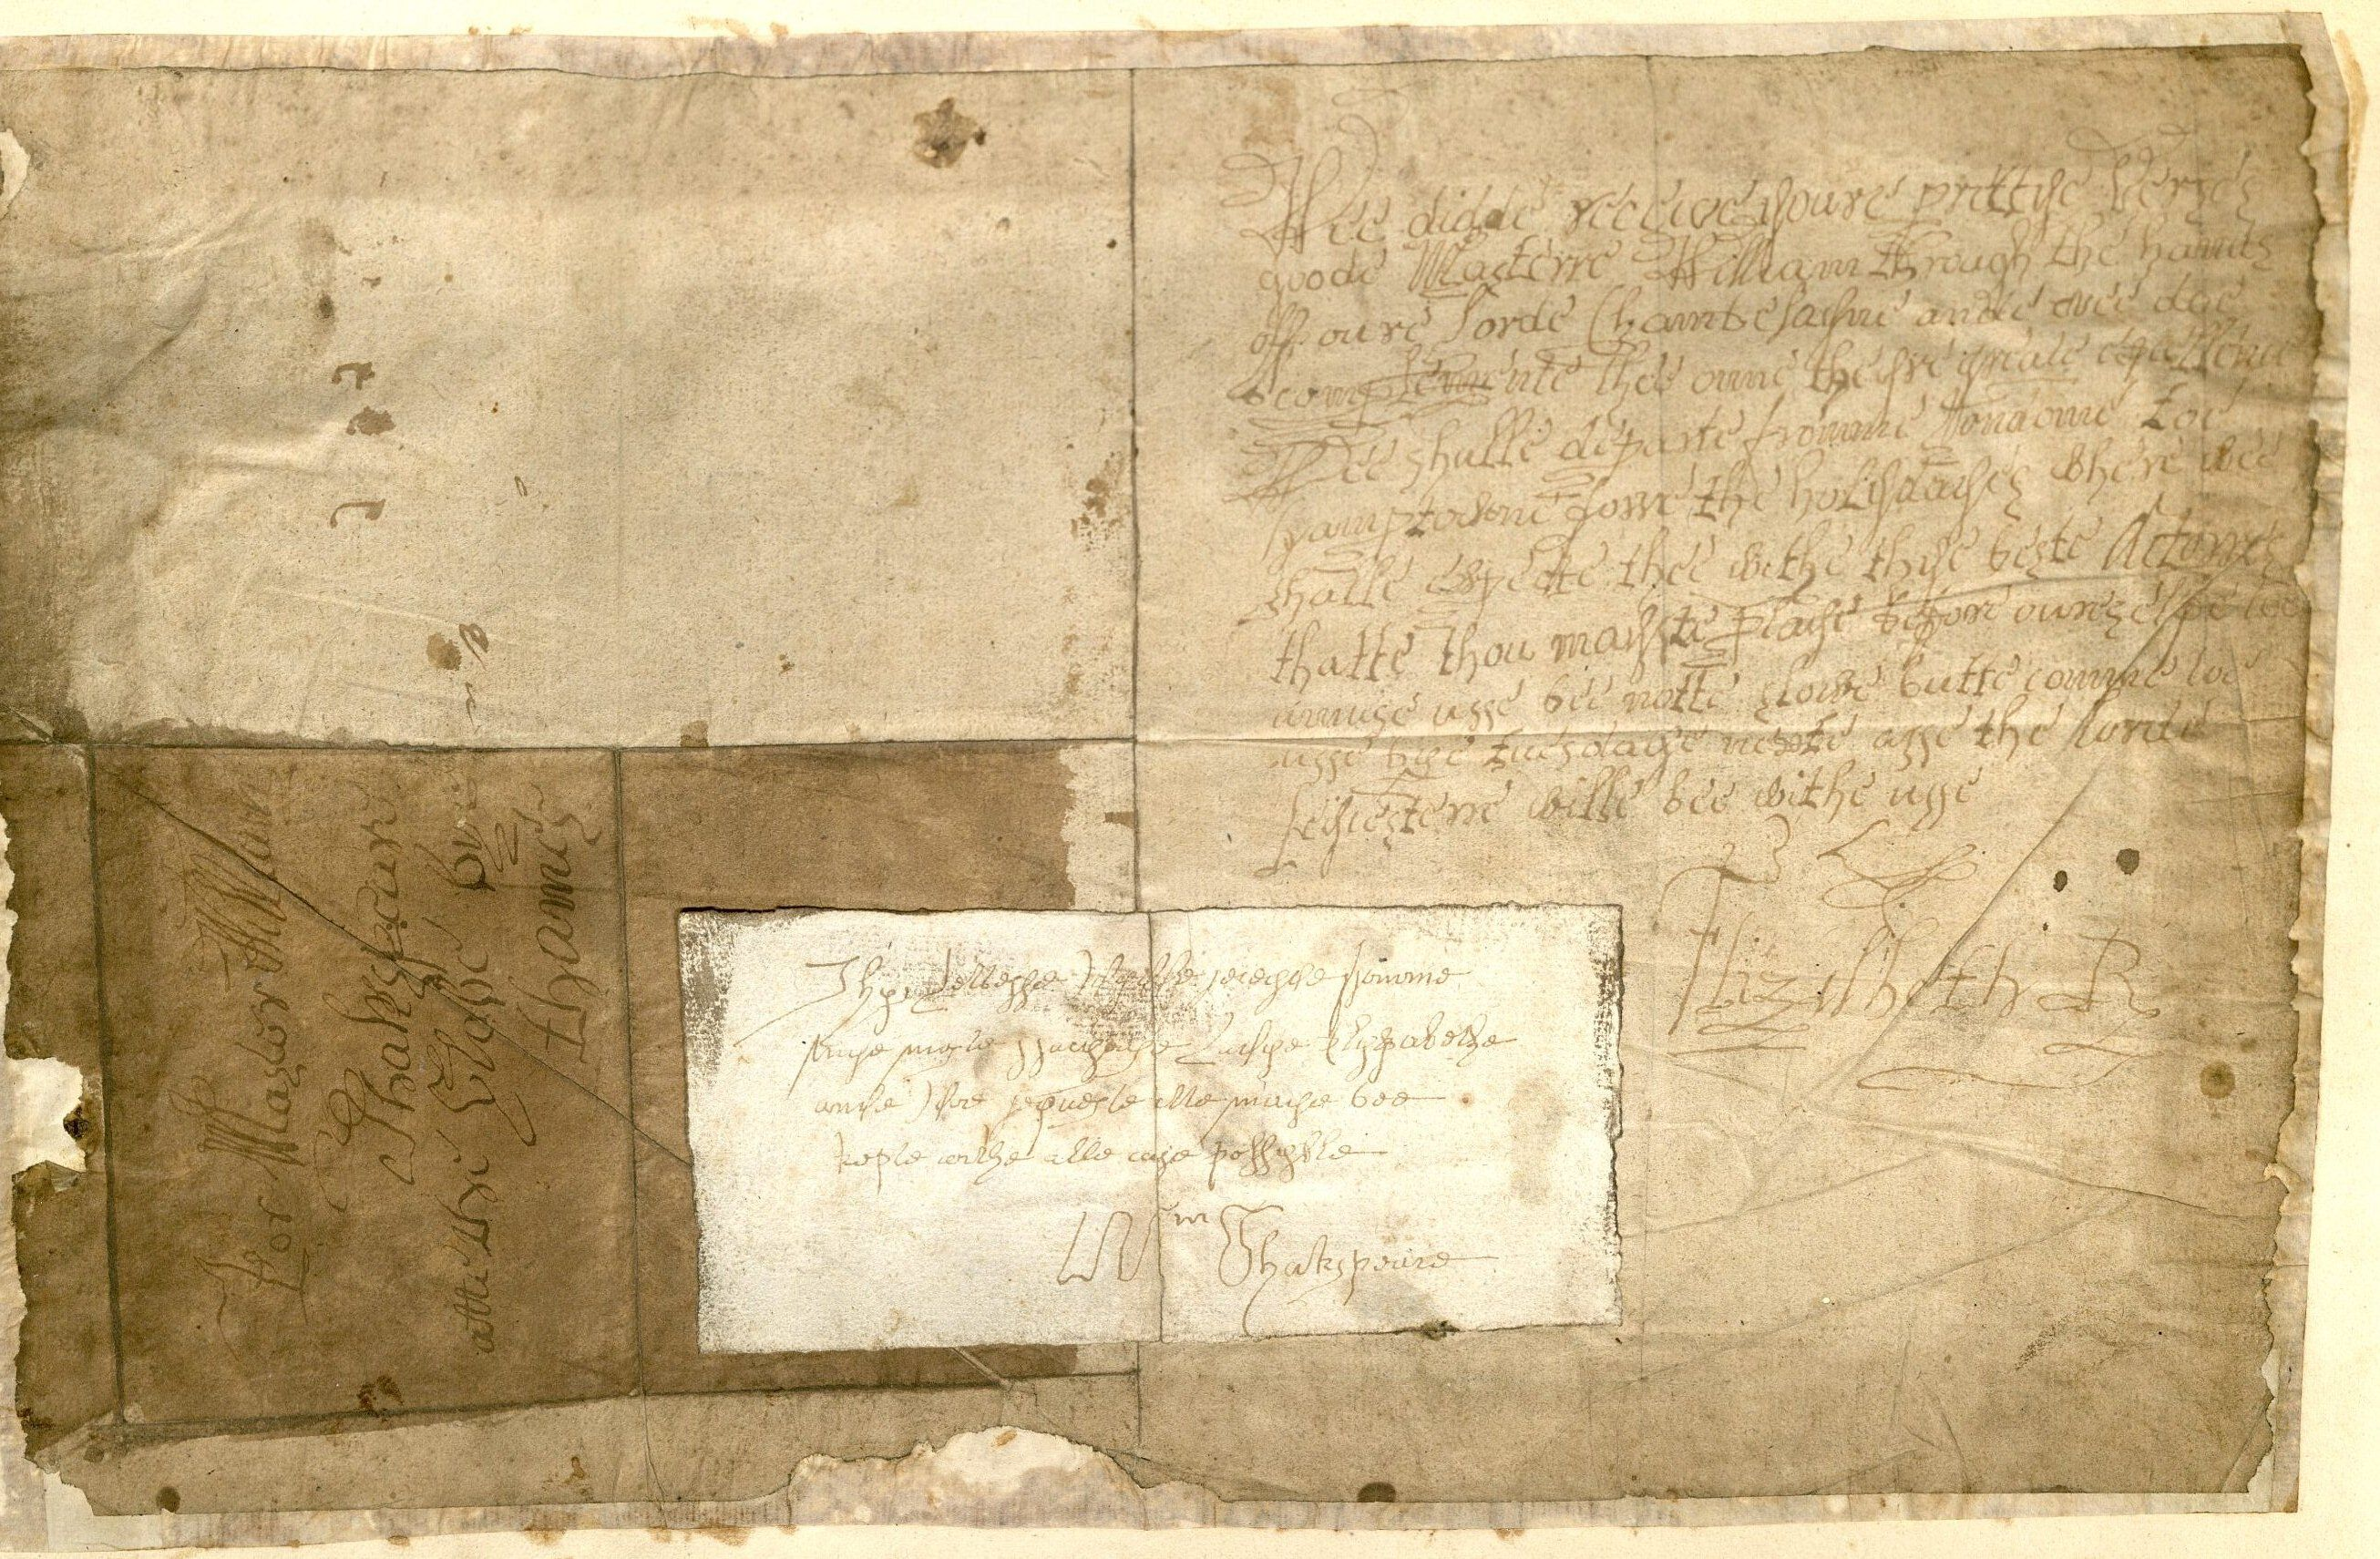 Forged letter from Elizabeth I by William Henry Ireland. MS Hyde 60 v. 5.